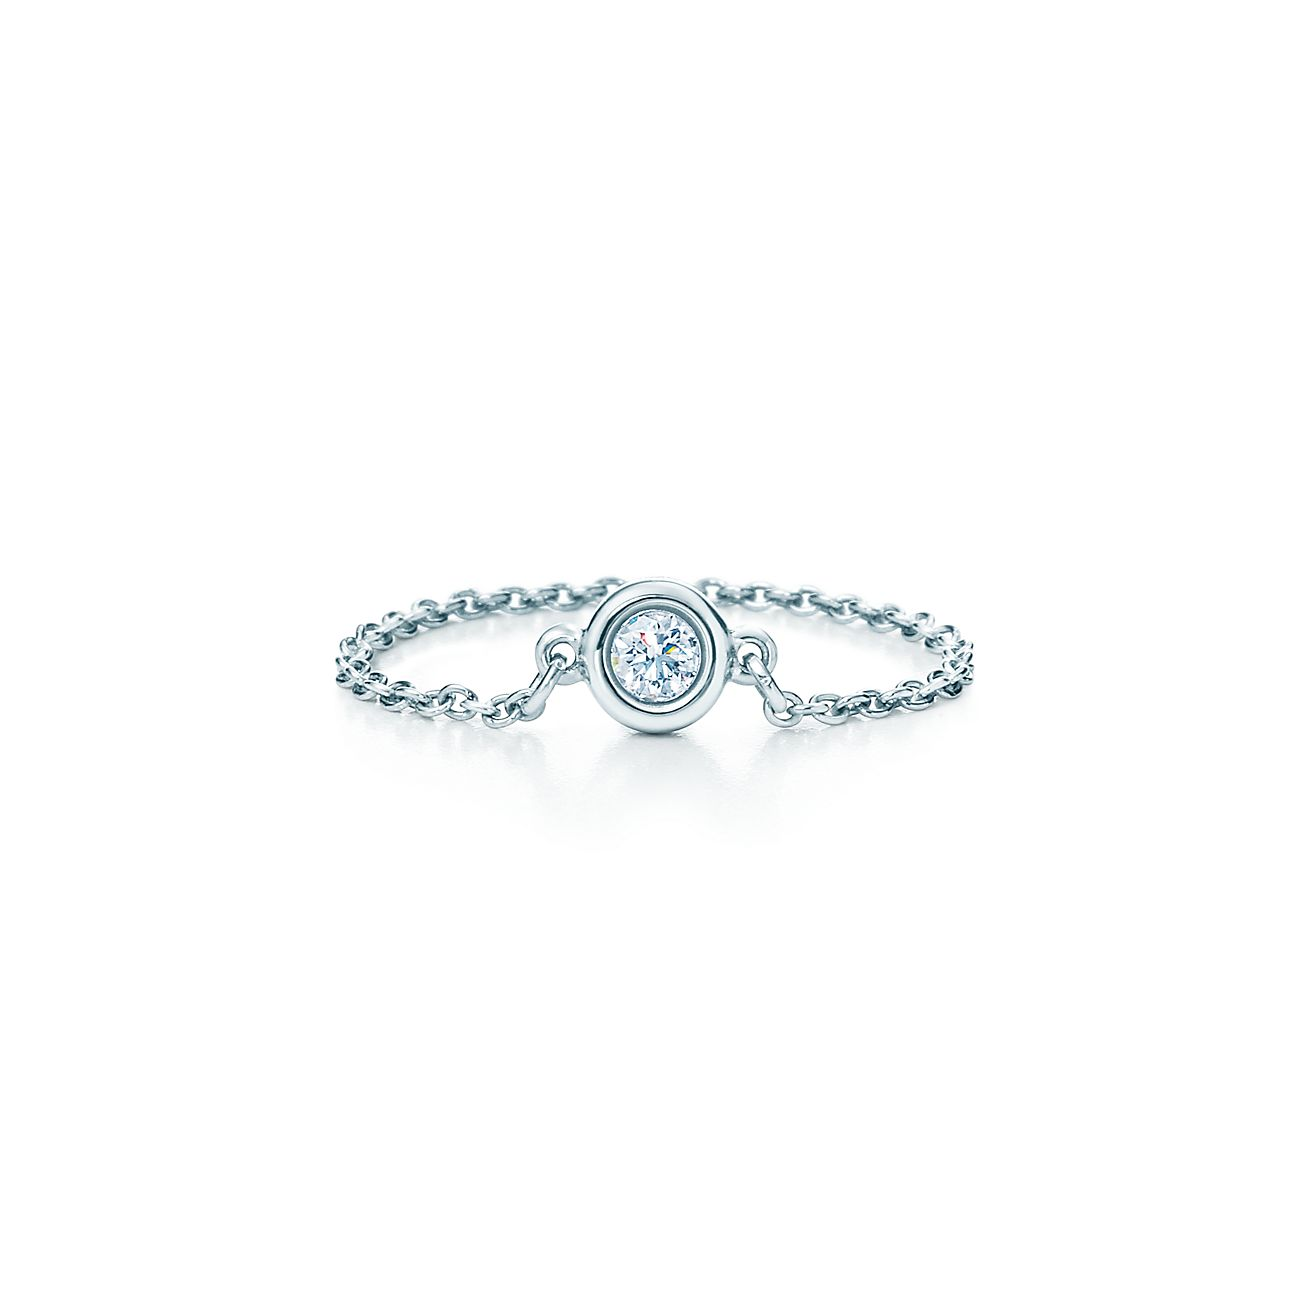 Elsa Peretti Diamonds by the Yard ring in platinum - Size 4 Tiffany & Co.